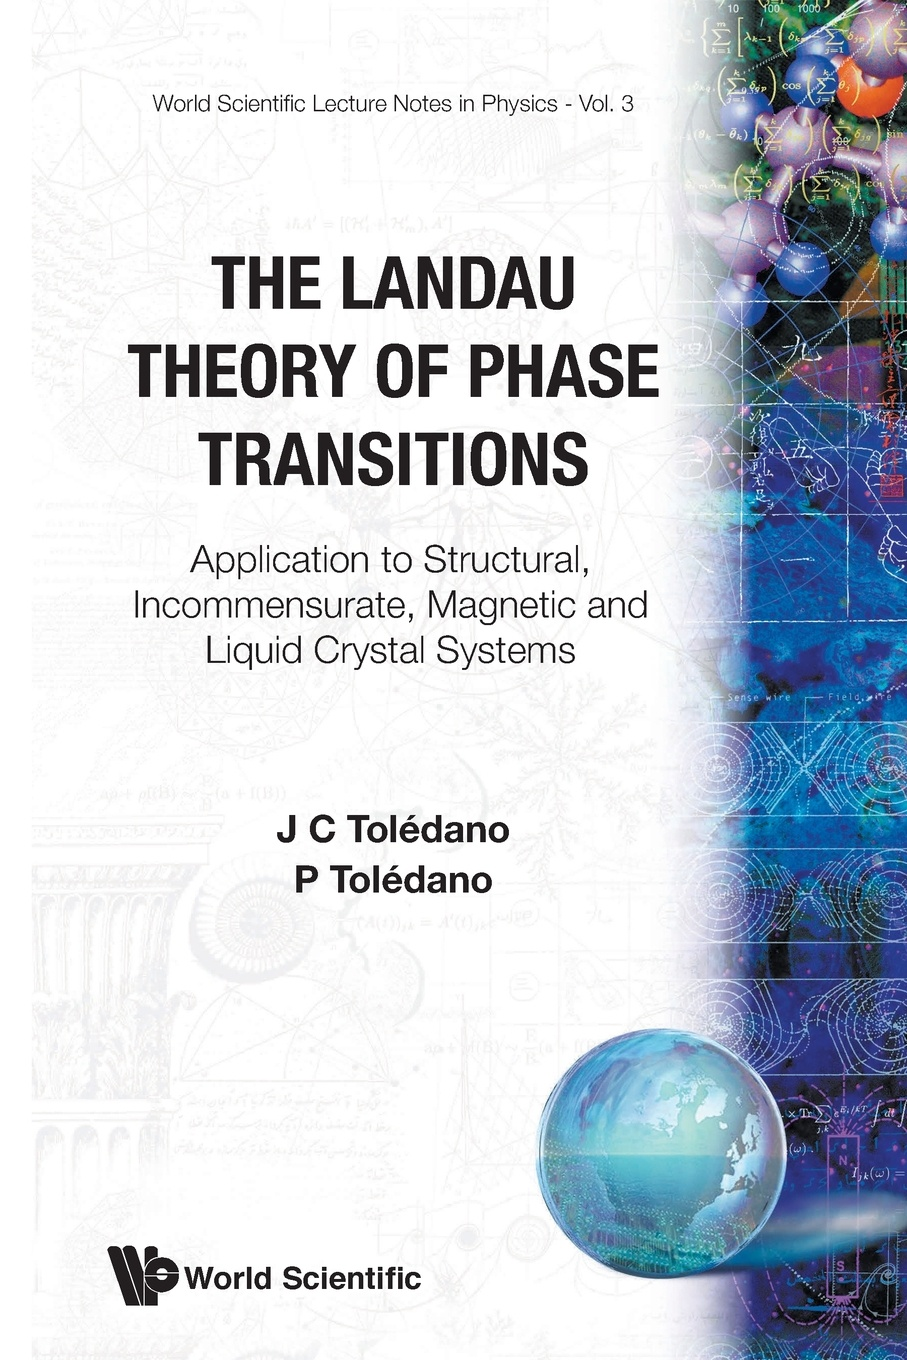 J C Tolédano, P Tolédano LANDAU THEORY OF PHASE TRANSITIONS, THE. APPLICATION TO STRUCTURAL, INCOMMENSURATE, MAGNETIC AND LIQUID CRYSTAL SYSTEMS лиходед в лесные сказки древней руси